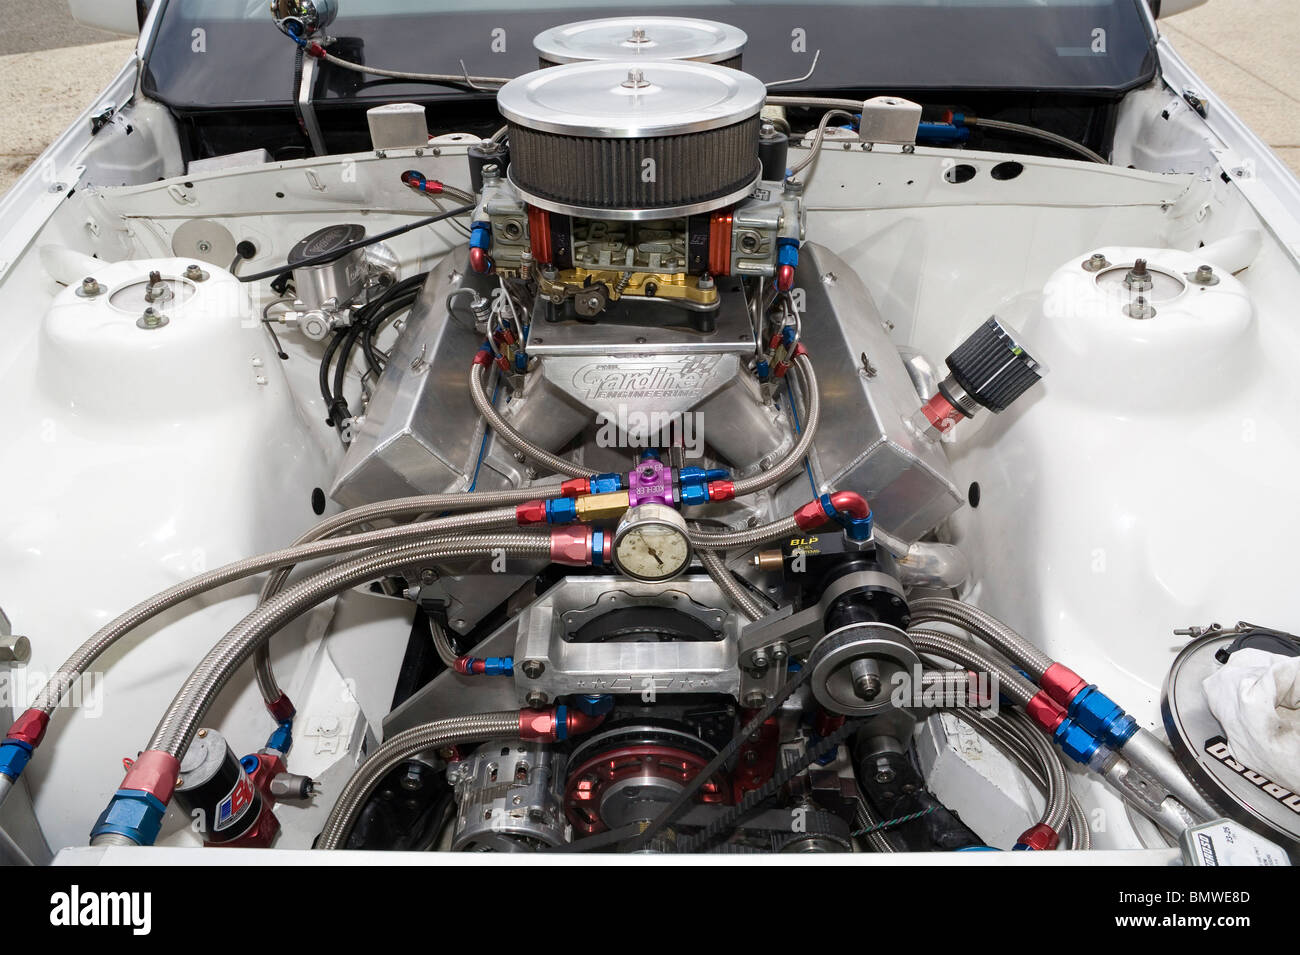 High Power V8 Drag Racing Engine Stock Photo 30063501 Alamy